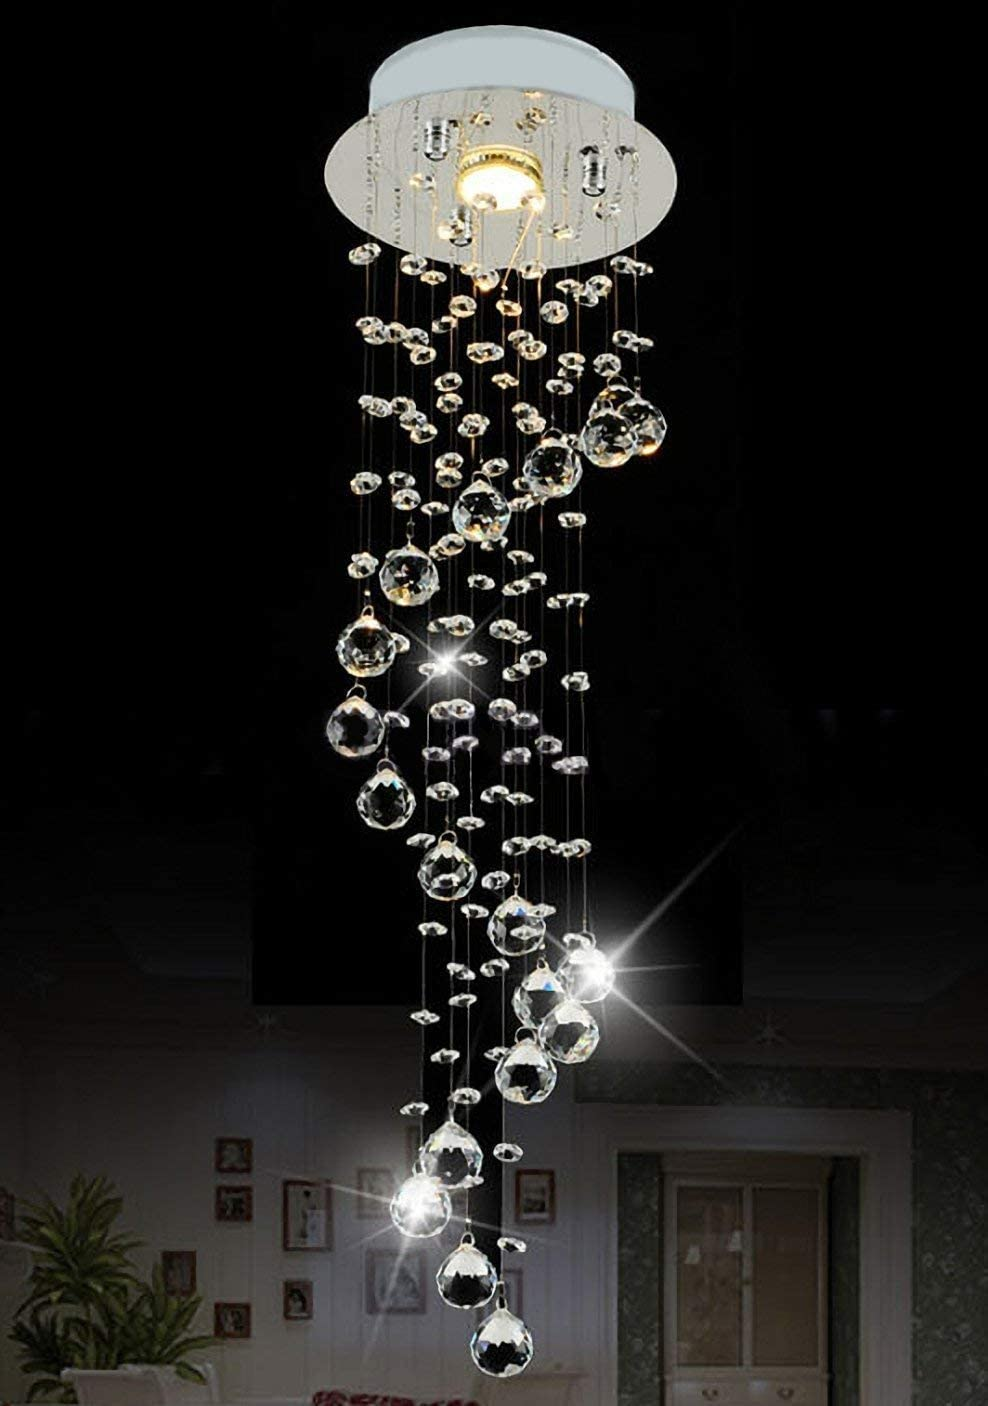 SILJOY Raindrop Chandelier Lighting Modern Crystal Flush Mount Ceiling Lighting D7.9″ x H29.5″